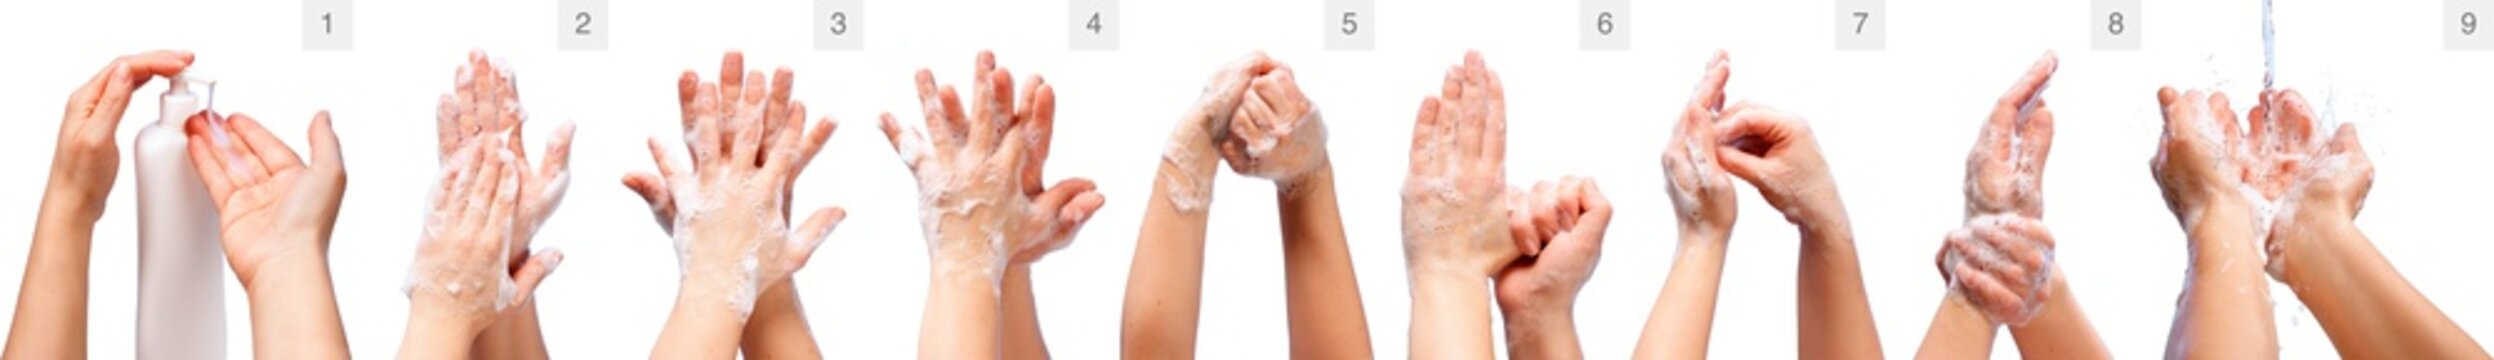 Correct Hand Washing - Medical Procedure Step By Step